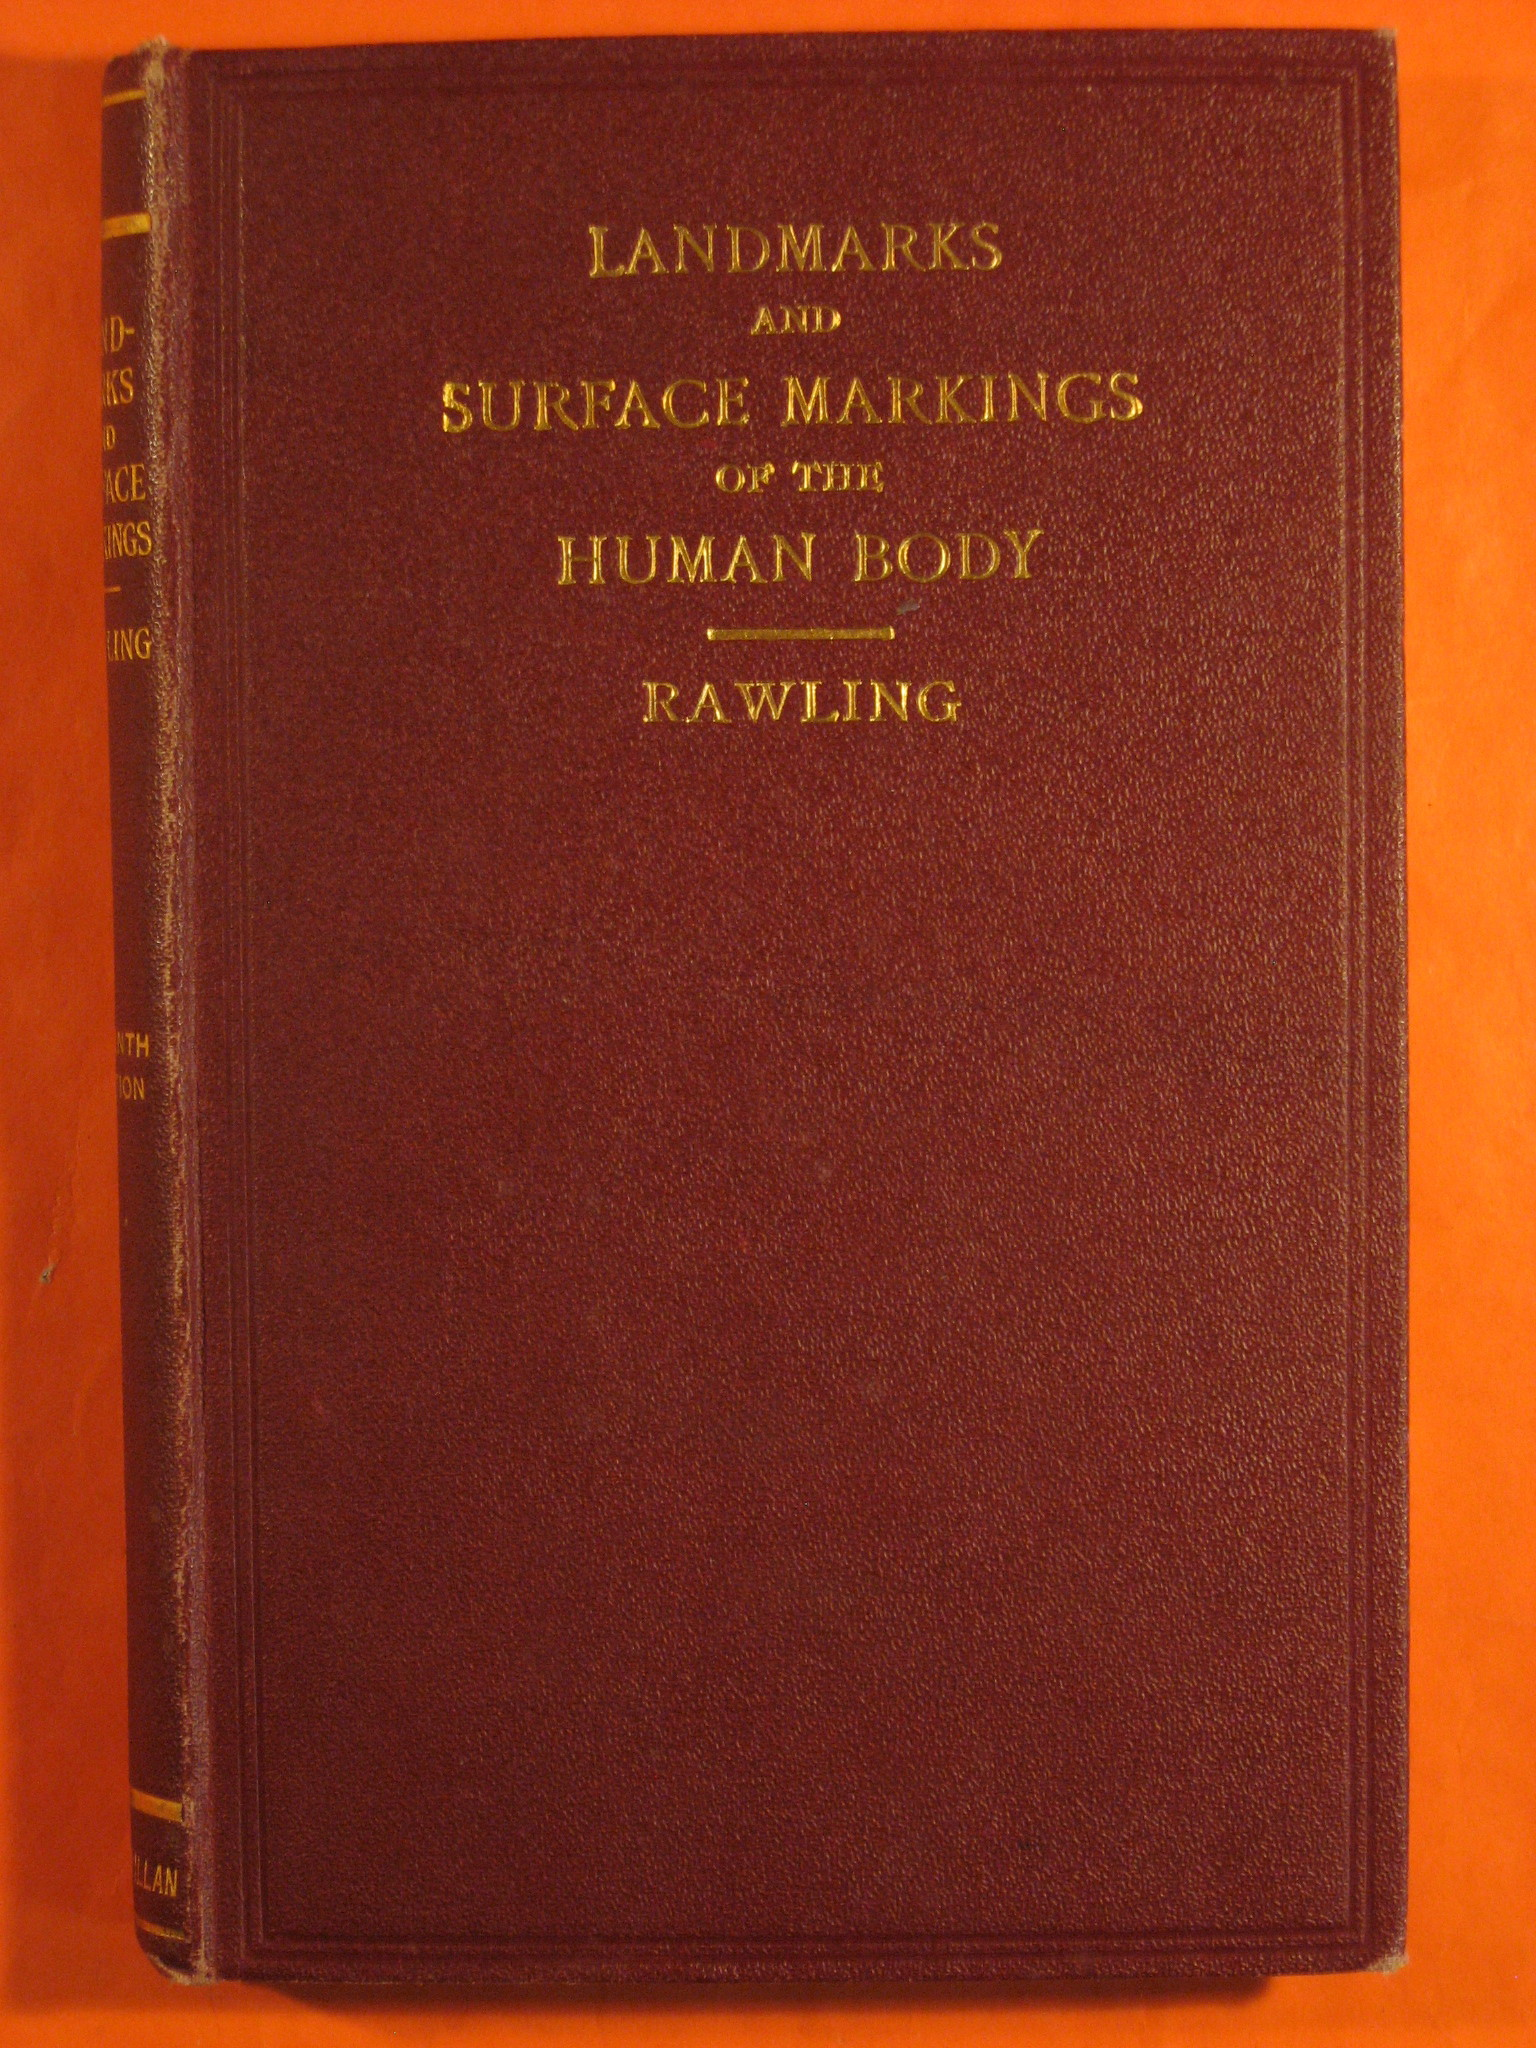 Landmarks and Surface Markings of the Human Body, Rawling, L. Bathe